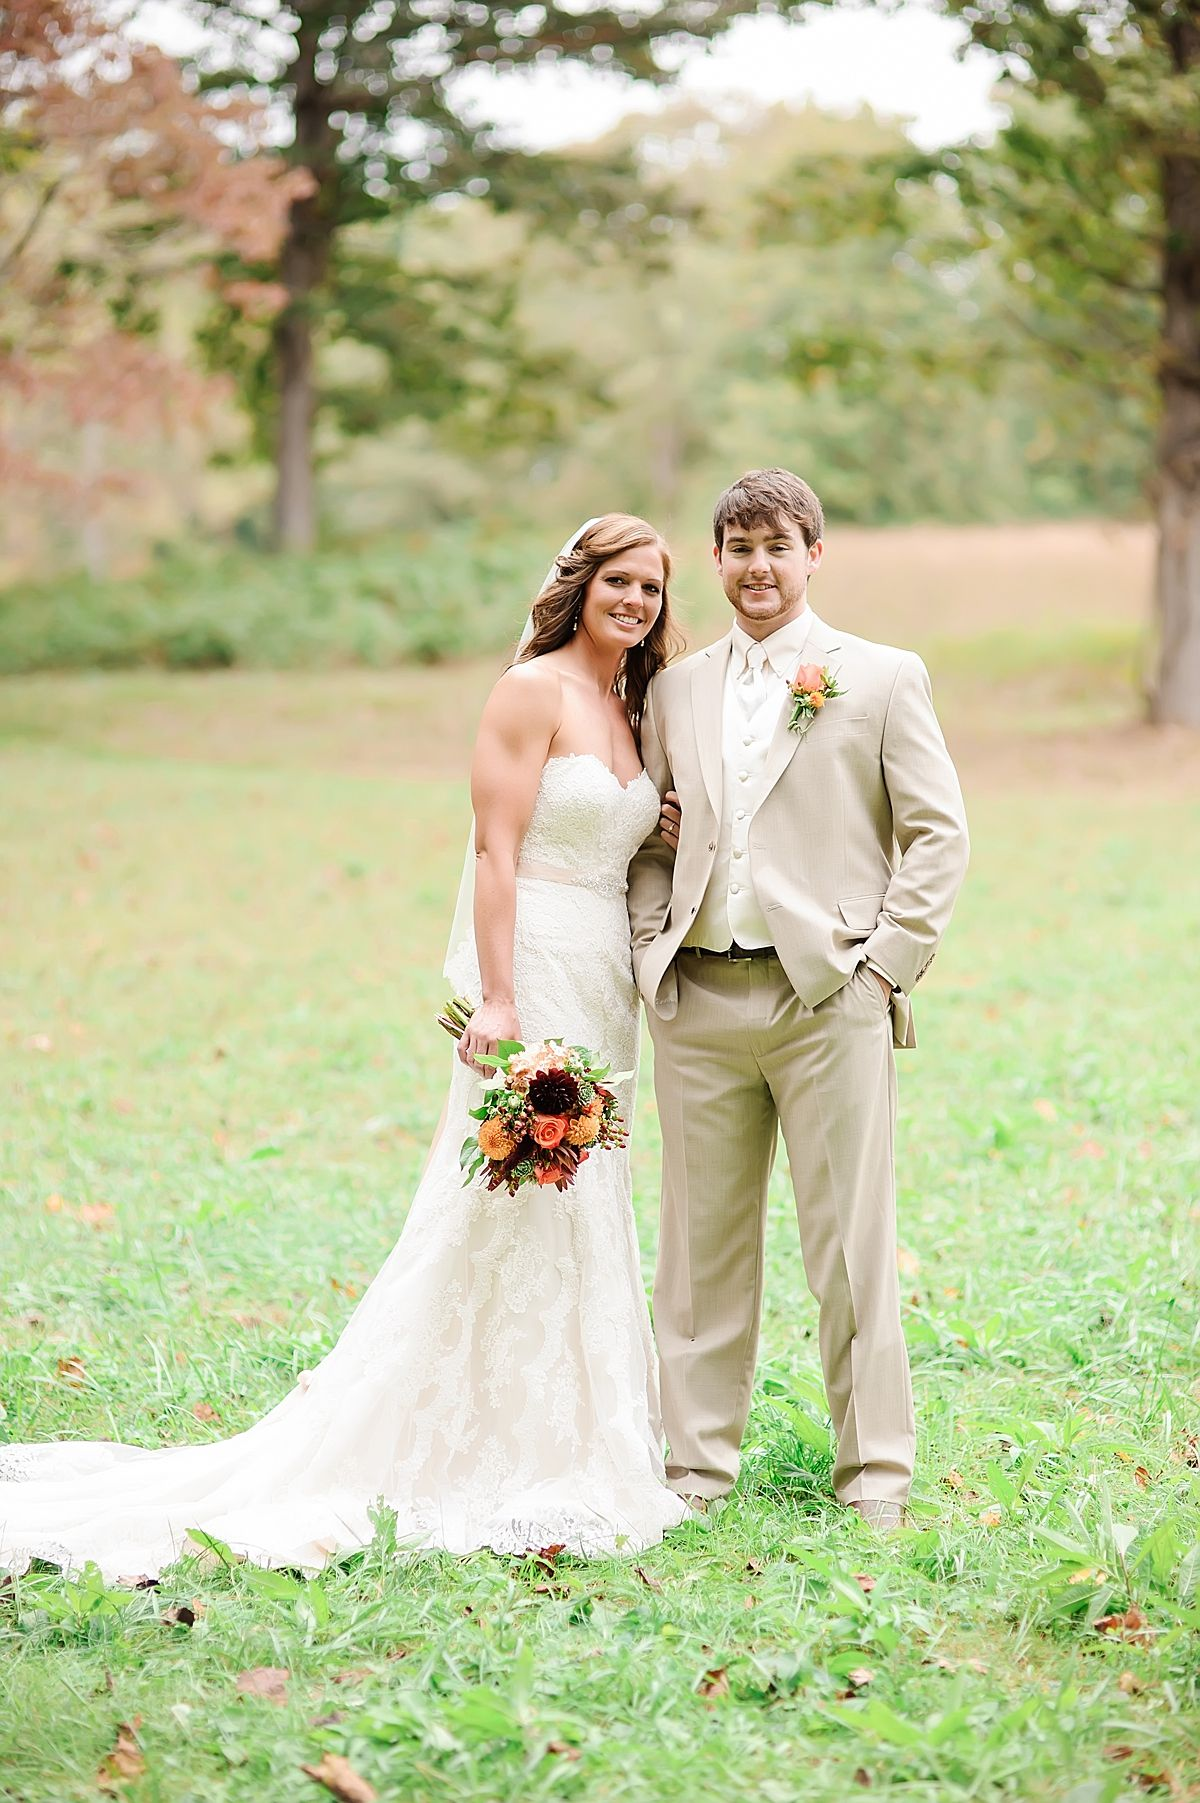 66d139492df Bride in strapless lace wedding dress with groom in light tan suit at  outdoor wedding in Knoxville